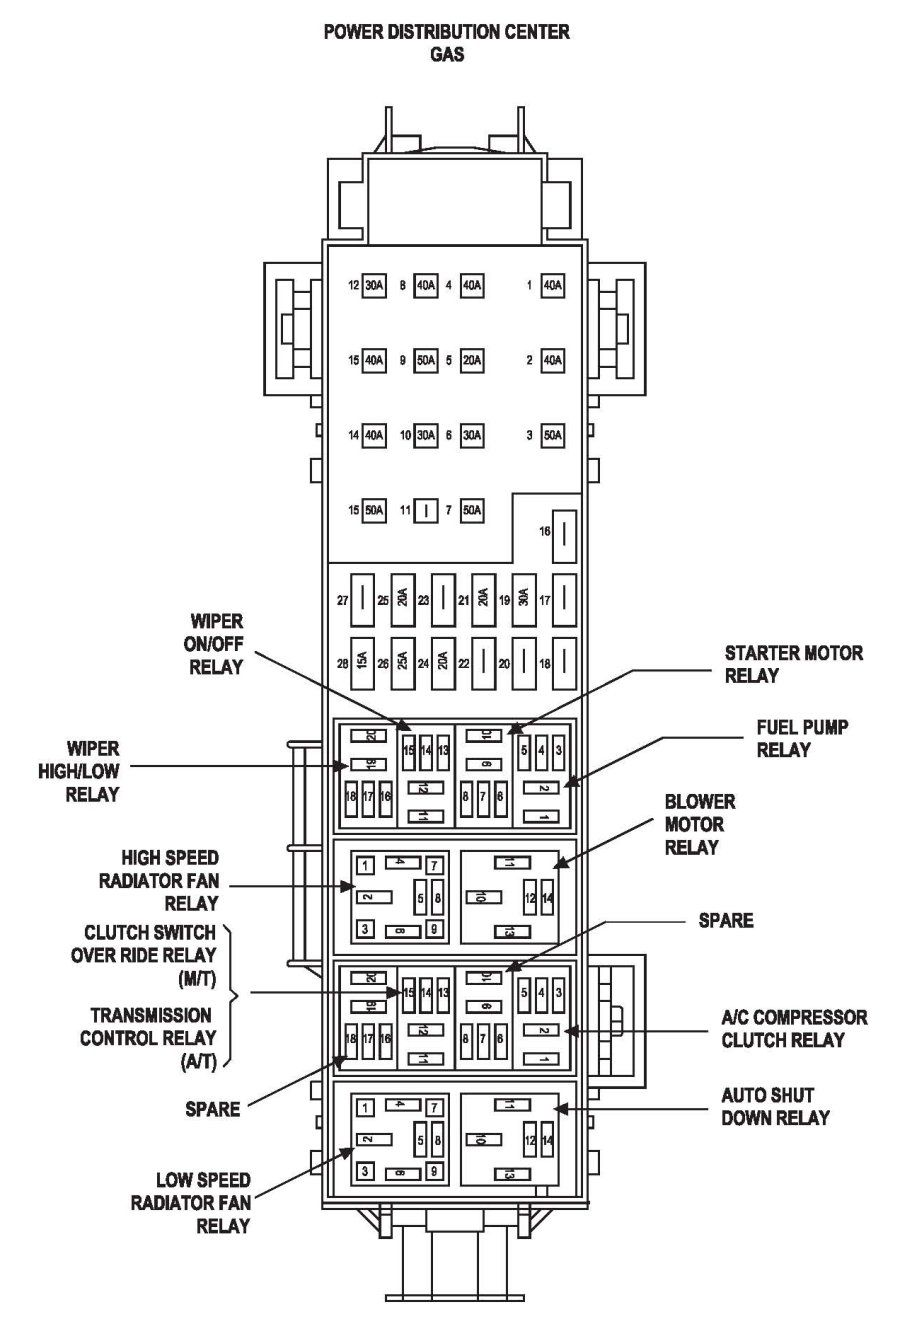 b3536c3739783eb19f827744cc42c3c4 jeep liberty fuse box diagram image details jeep liberty 2003 jeep liberty wiring diagram at crackthecode.co